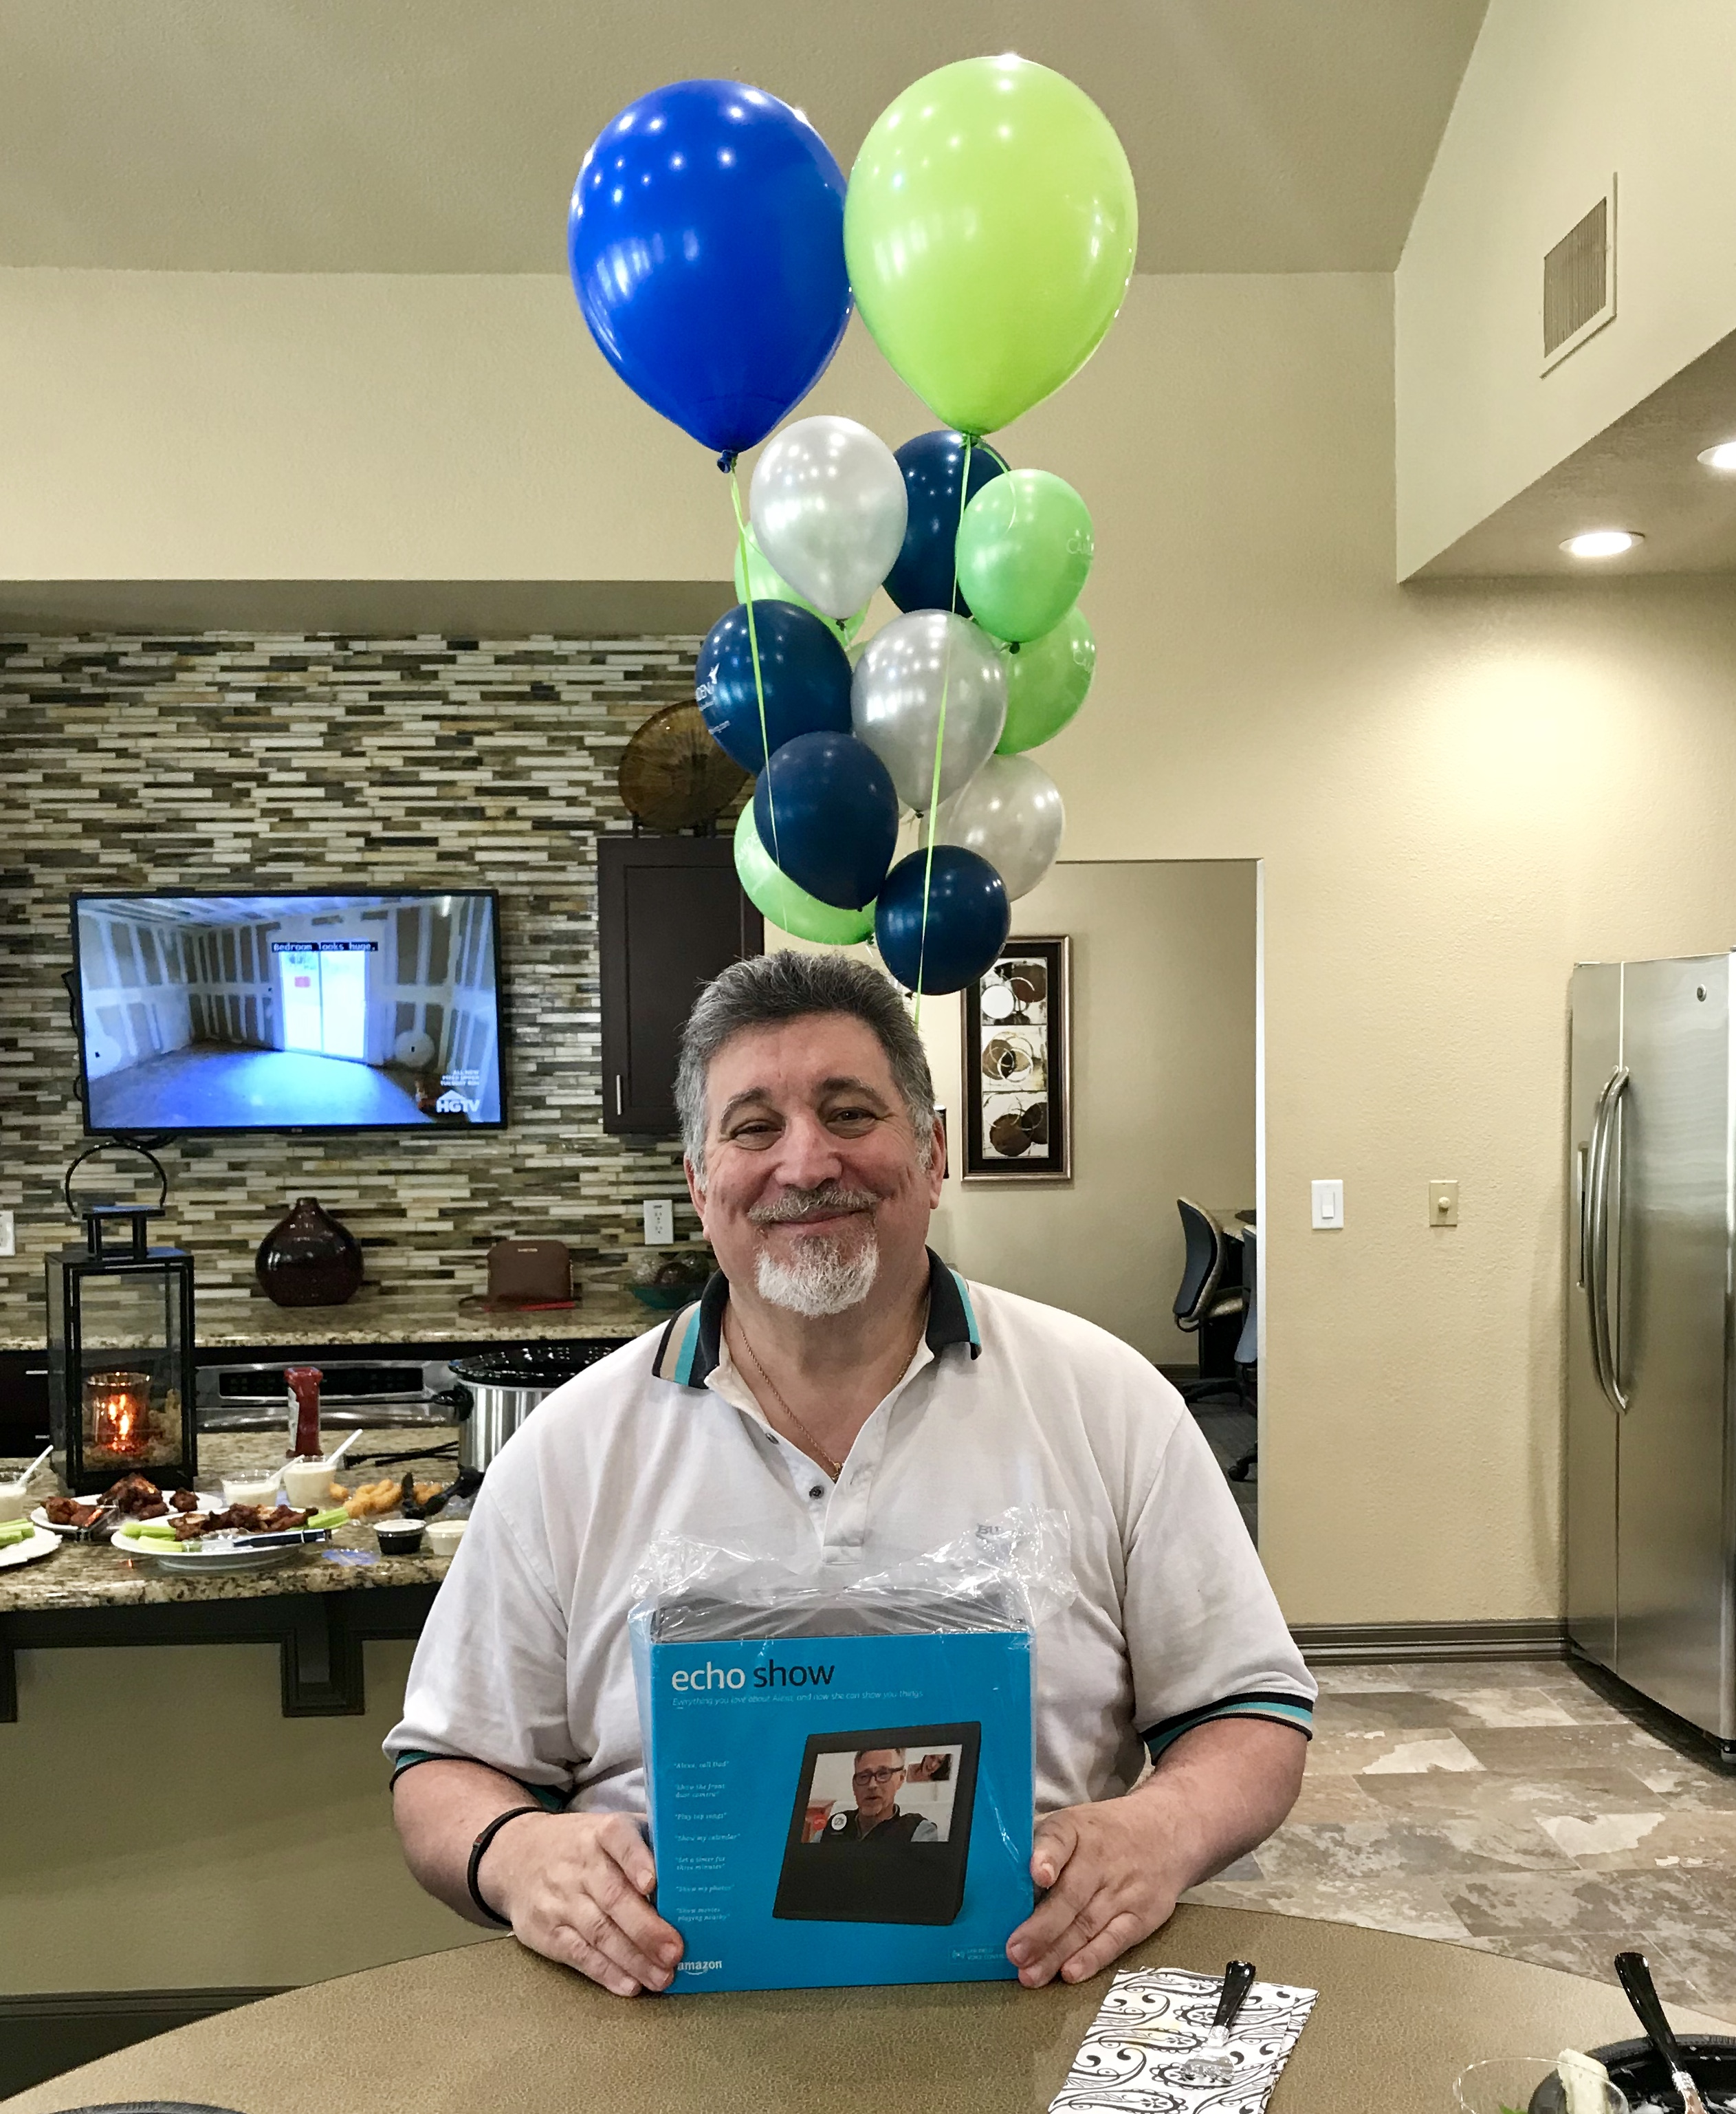 Big Jim opening a Camden Echo Show as a gift from his Camden family for 25 years at Camden Cimarron Apartments in Dallas, TX